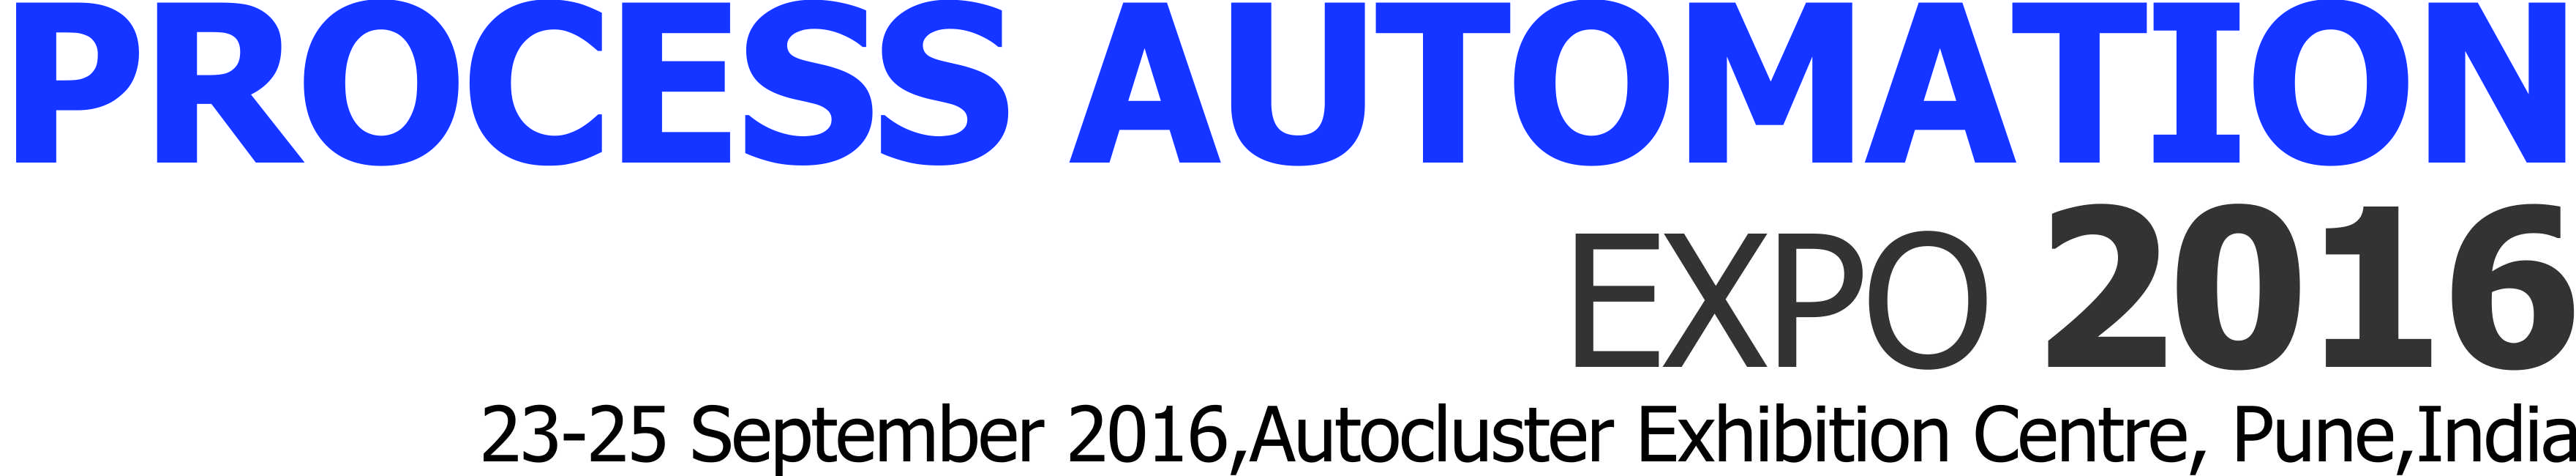 Process Automation Expo -2016